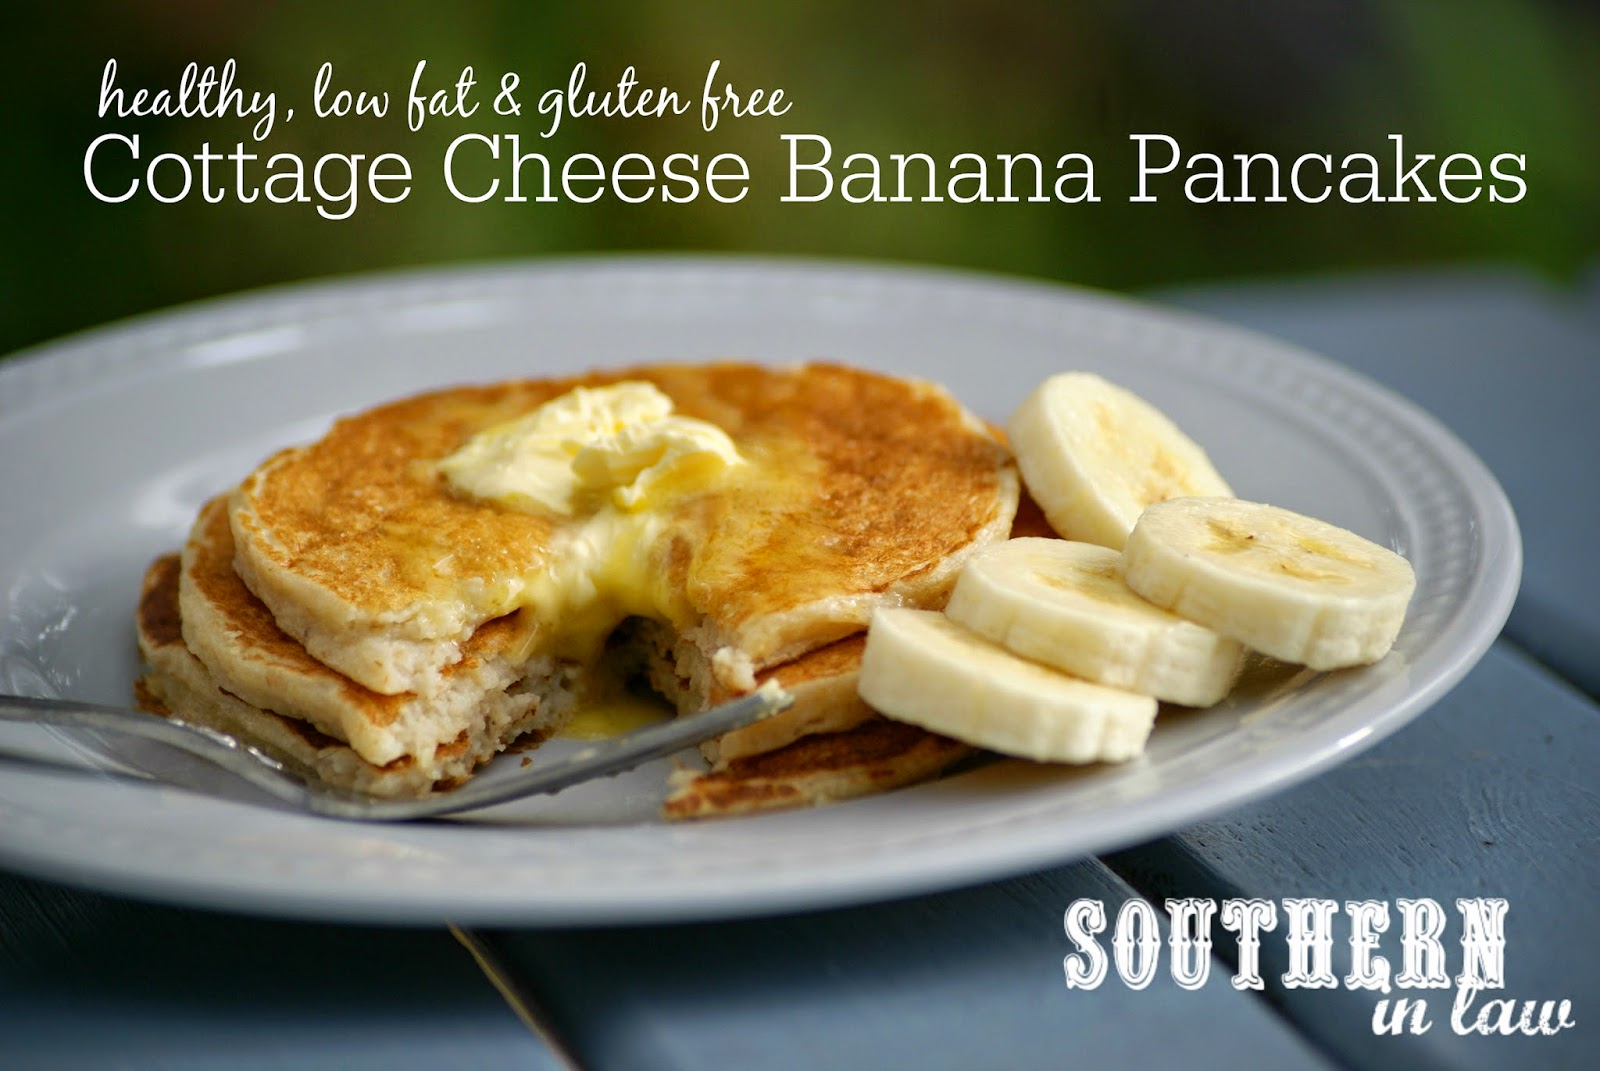 Low Fat Banana Cottage Cheese Pancakes Recipe - healthy thick and fluffy pancake recipe - gluten free, low fat, high protein, sugar free, clean eating friendly